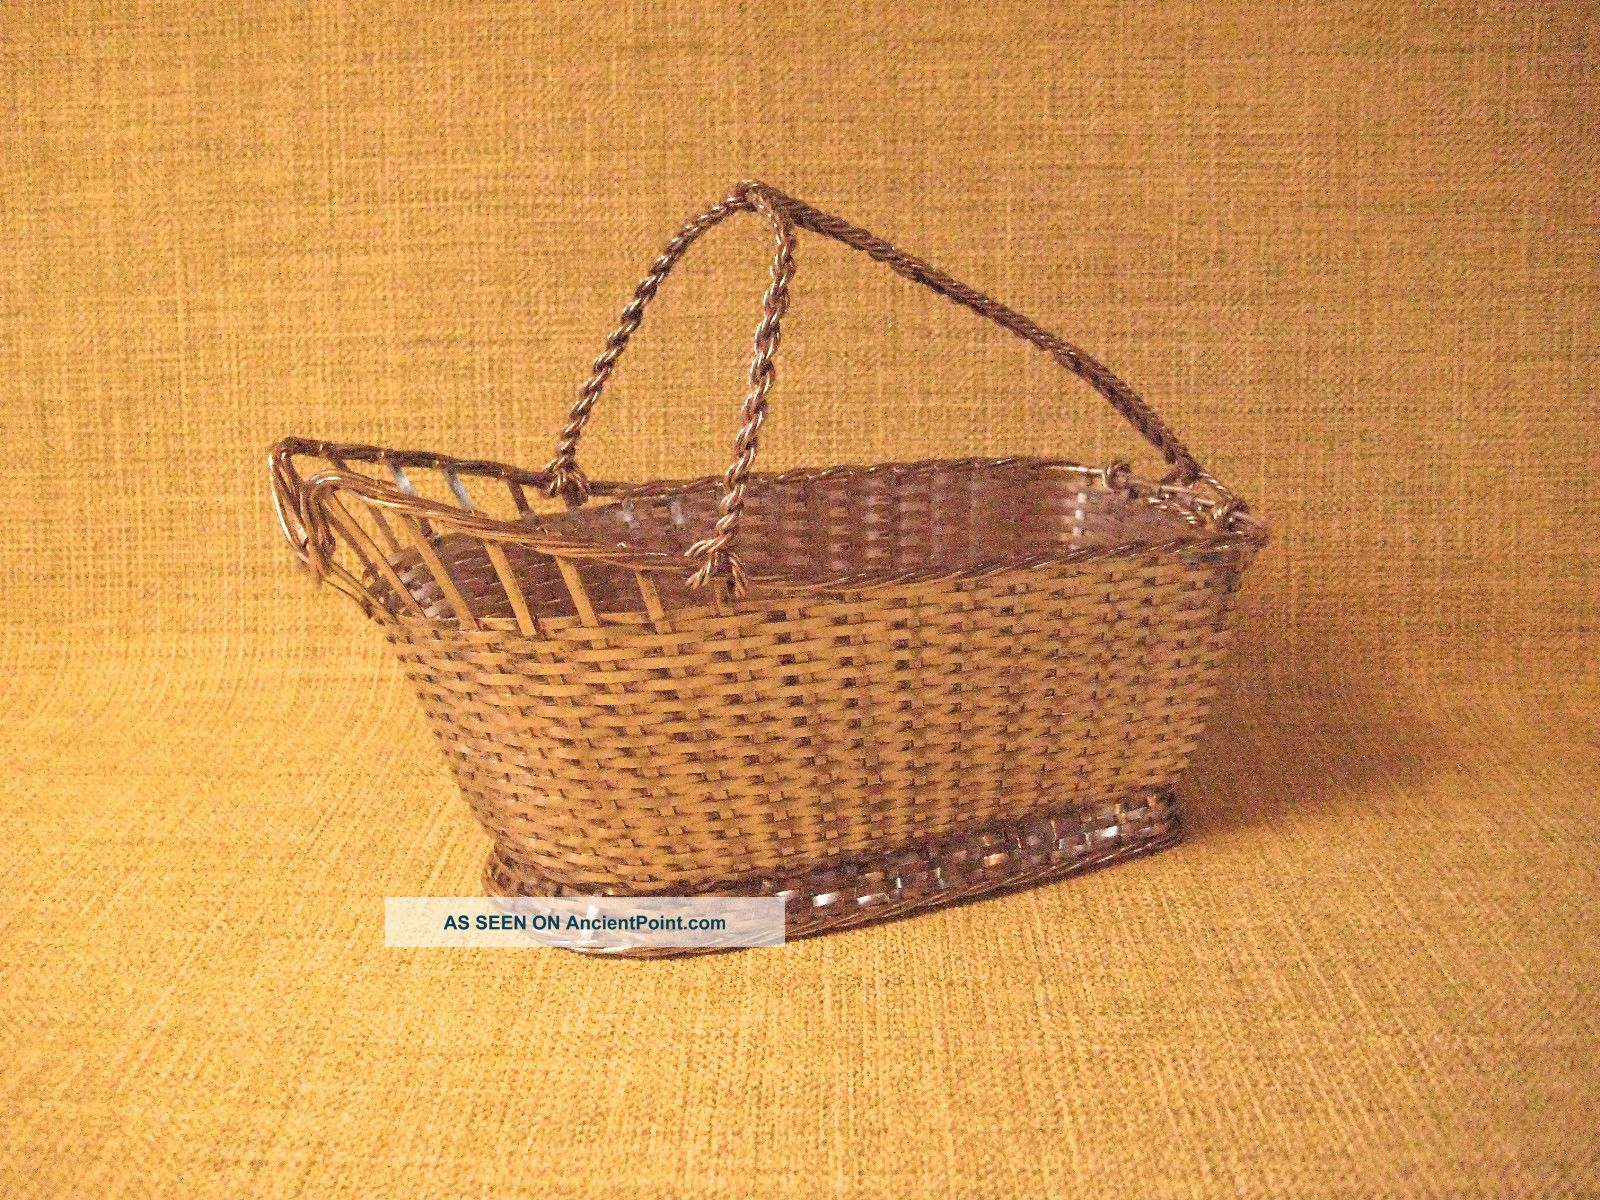 Christofle Silver Plate Woven Wine Basket/bottle Caddy Gallia France Vintage Vgc Baskets photo